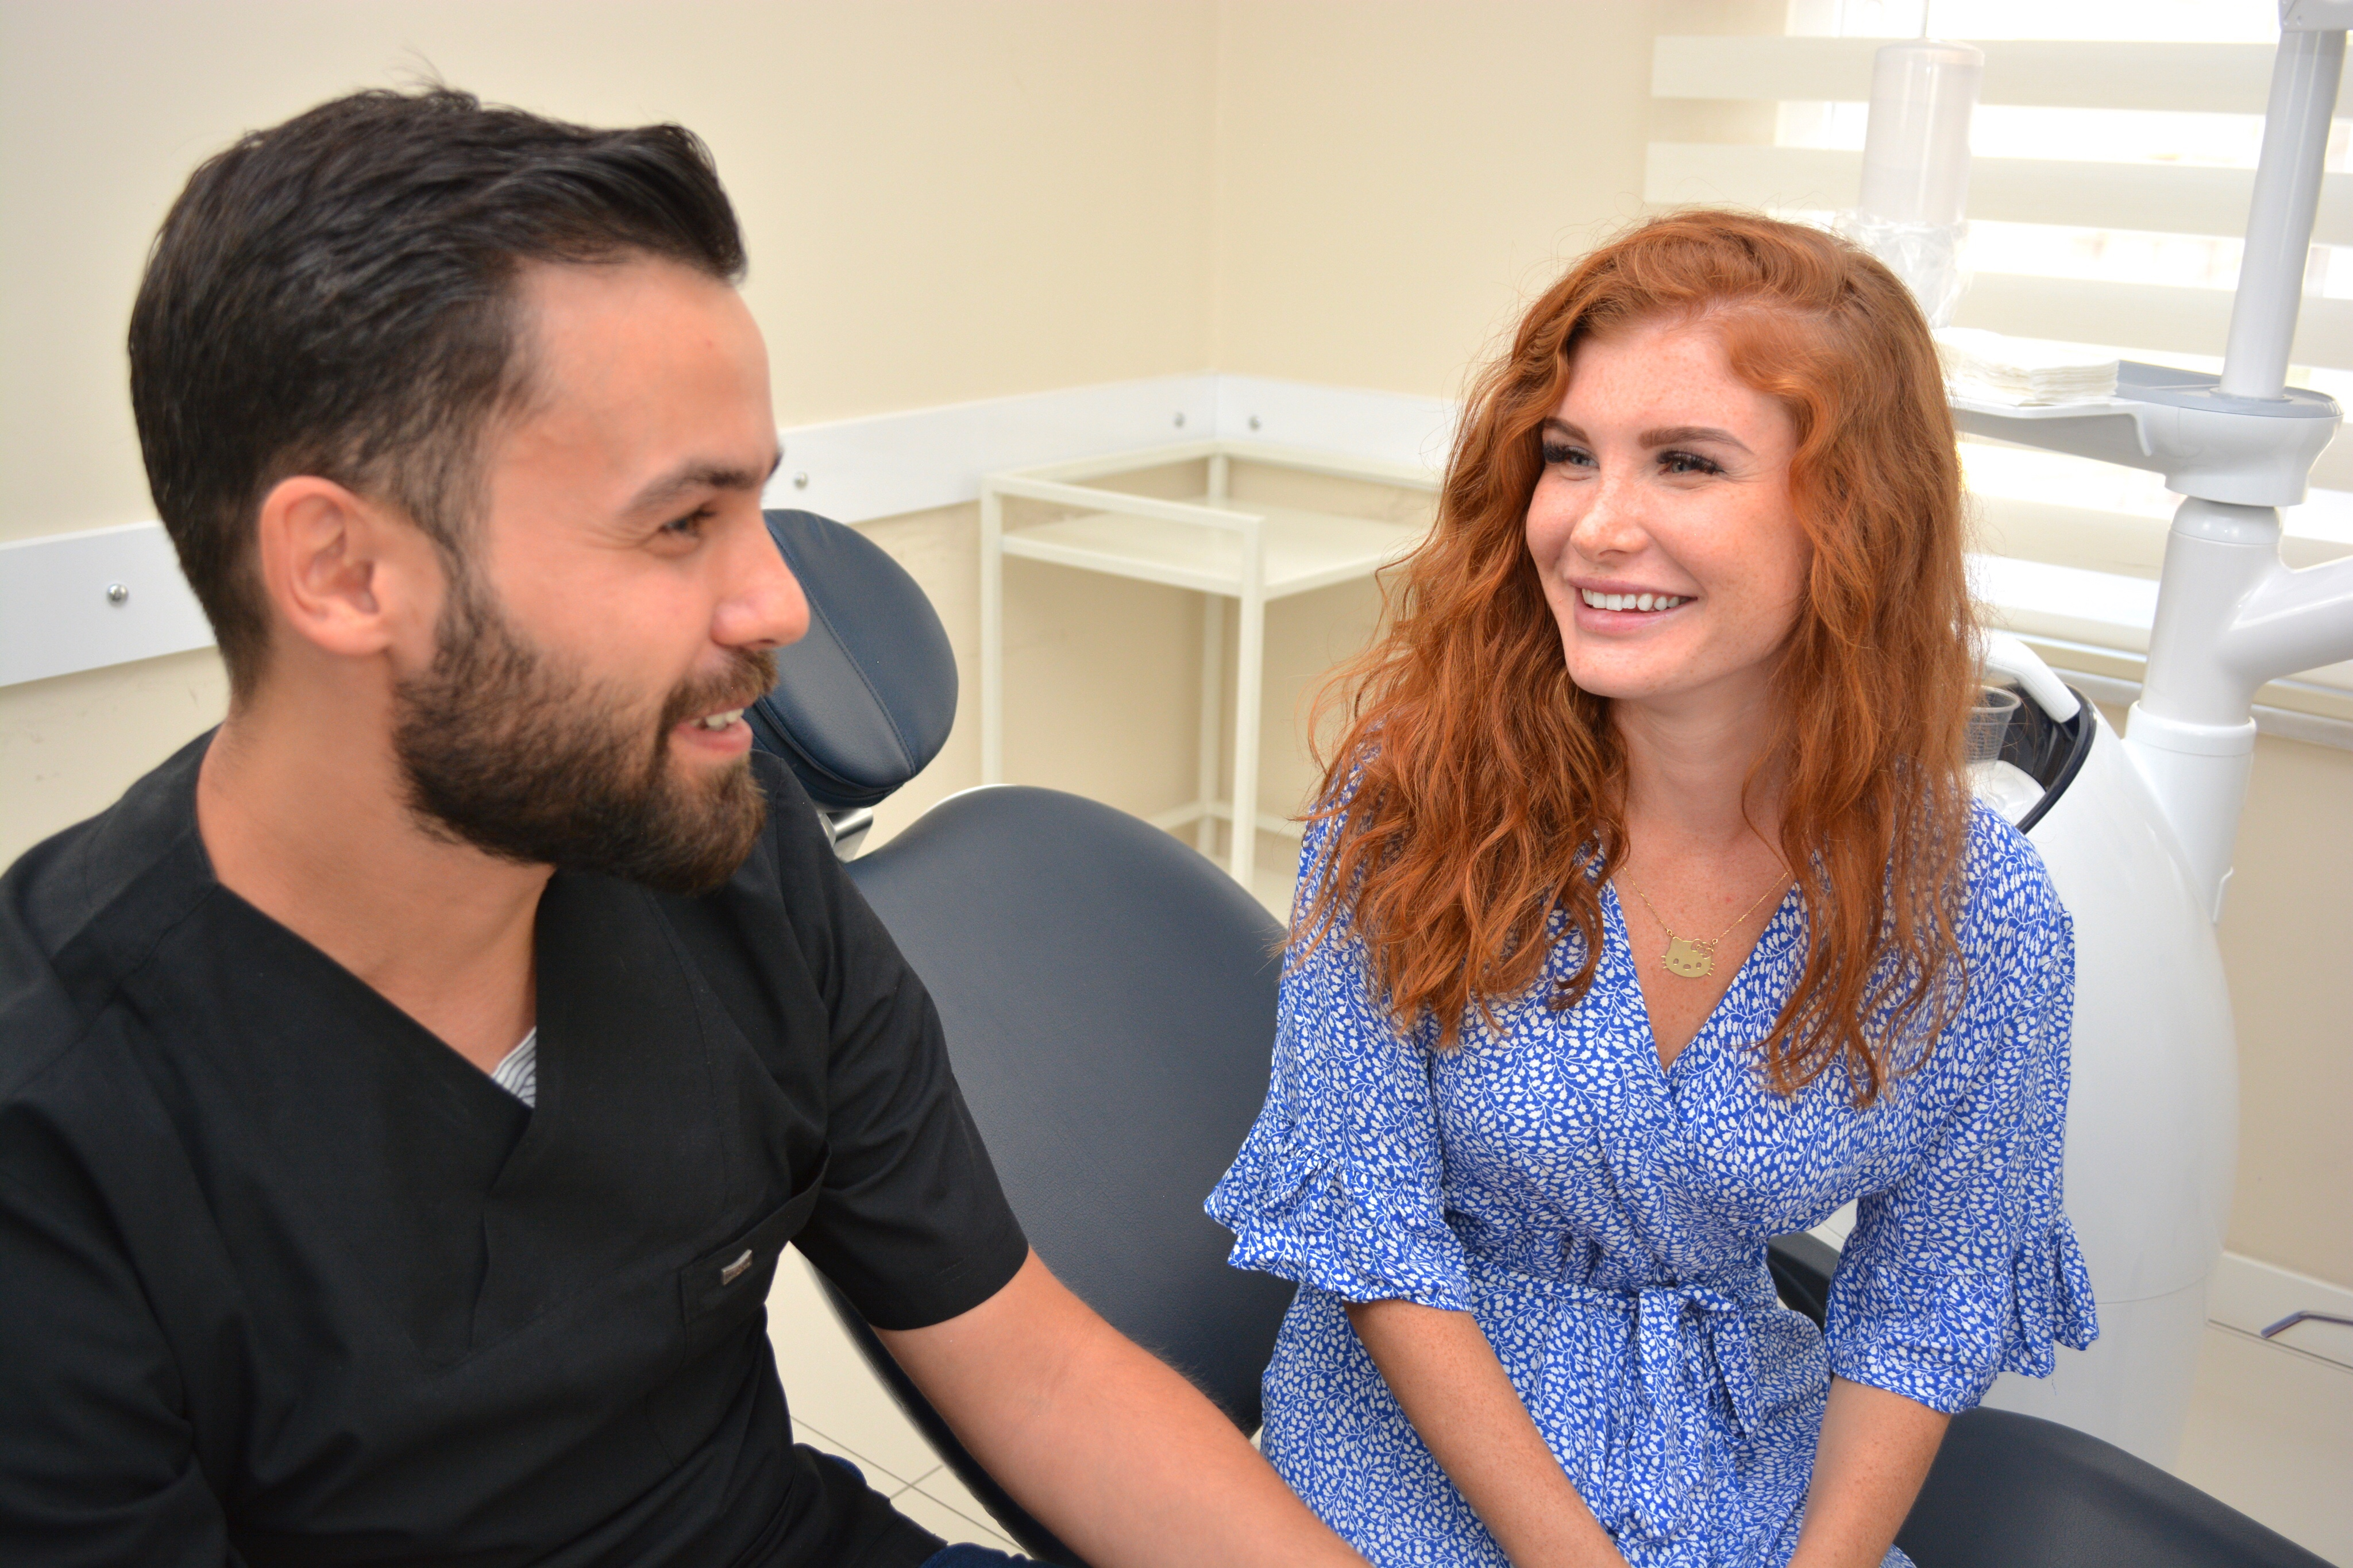 SUMMER DENTAL ALANYA GUIDE TO BEST DENTISTS NEAR ME